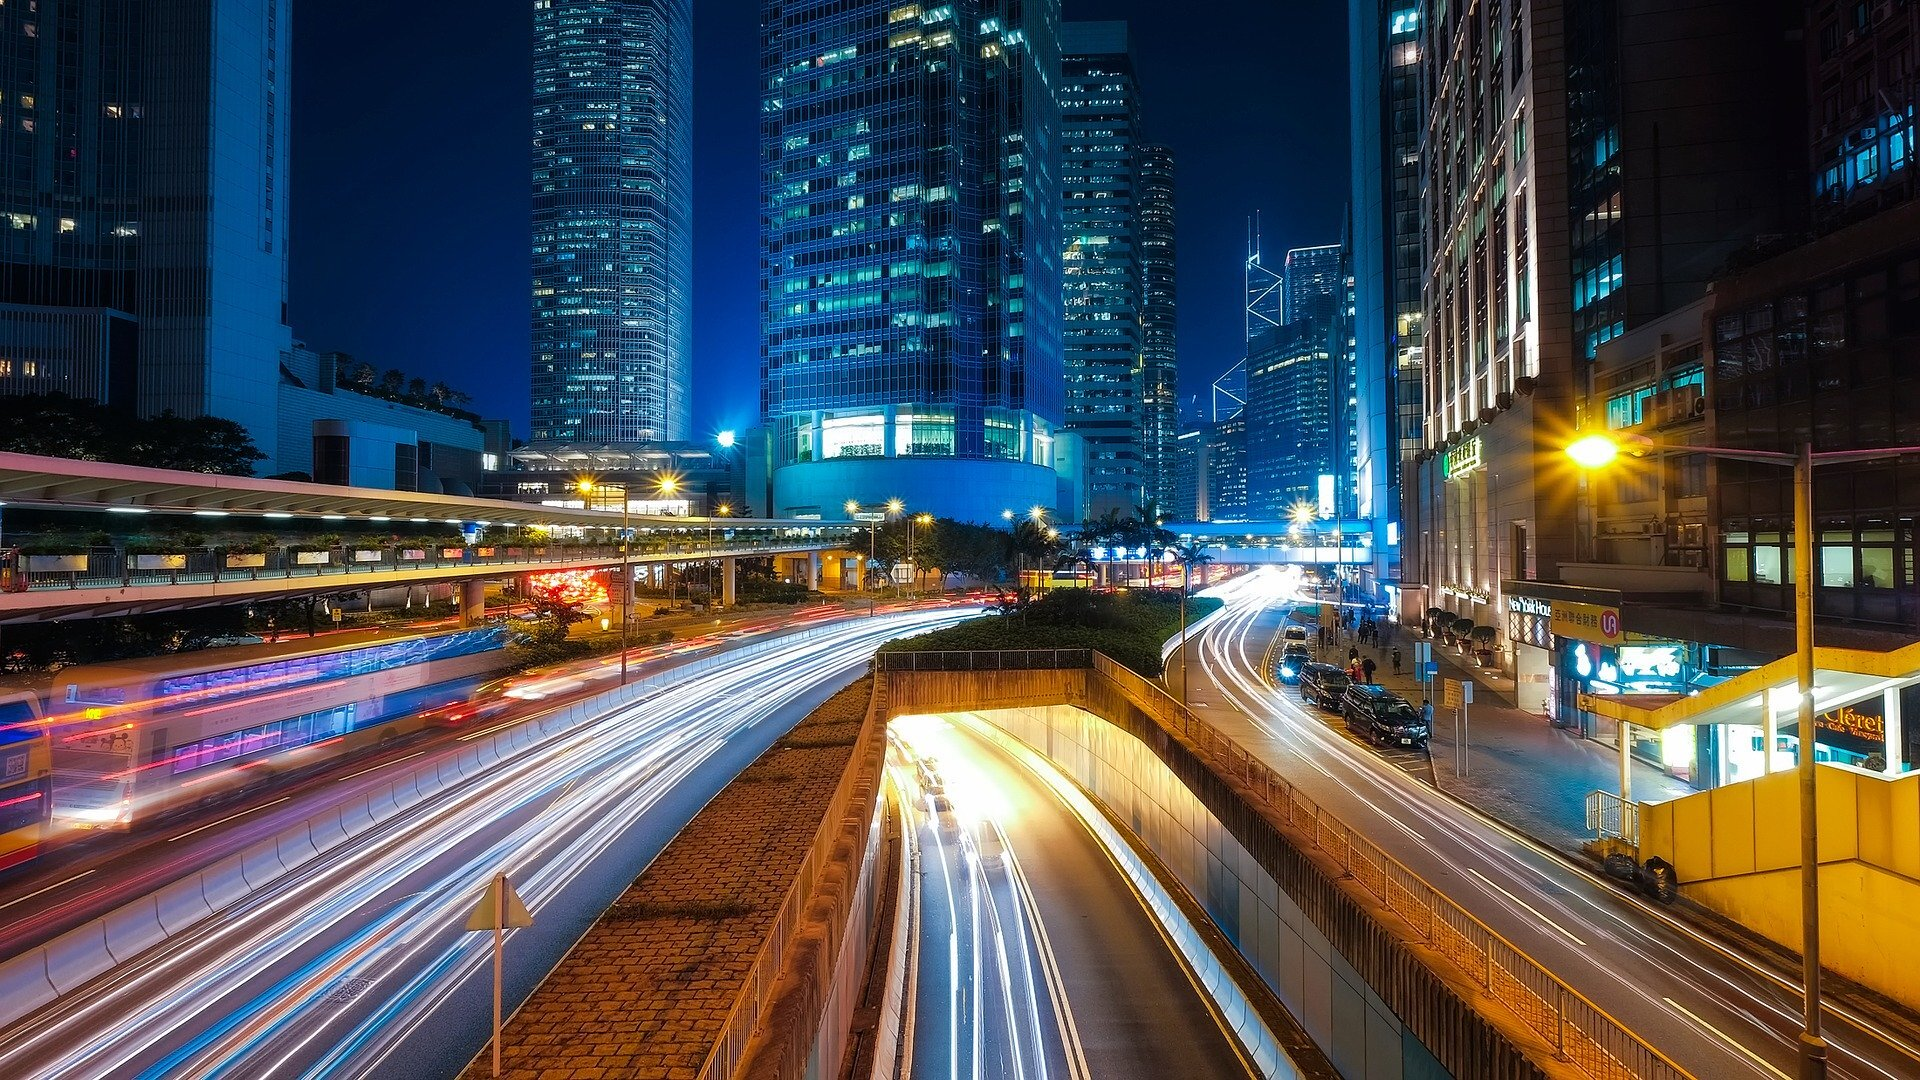 Cities are becoming digital, thanks to the urban data platforms that enable it